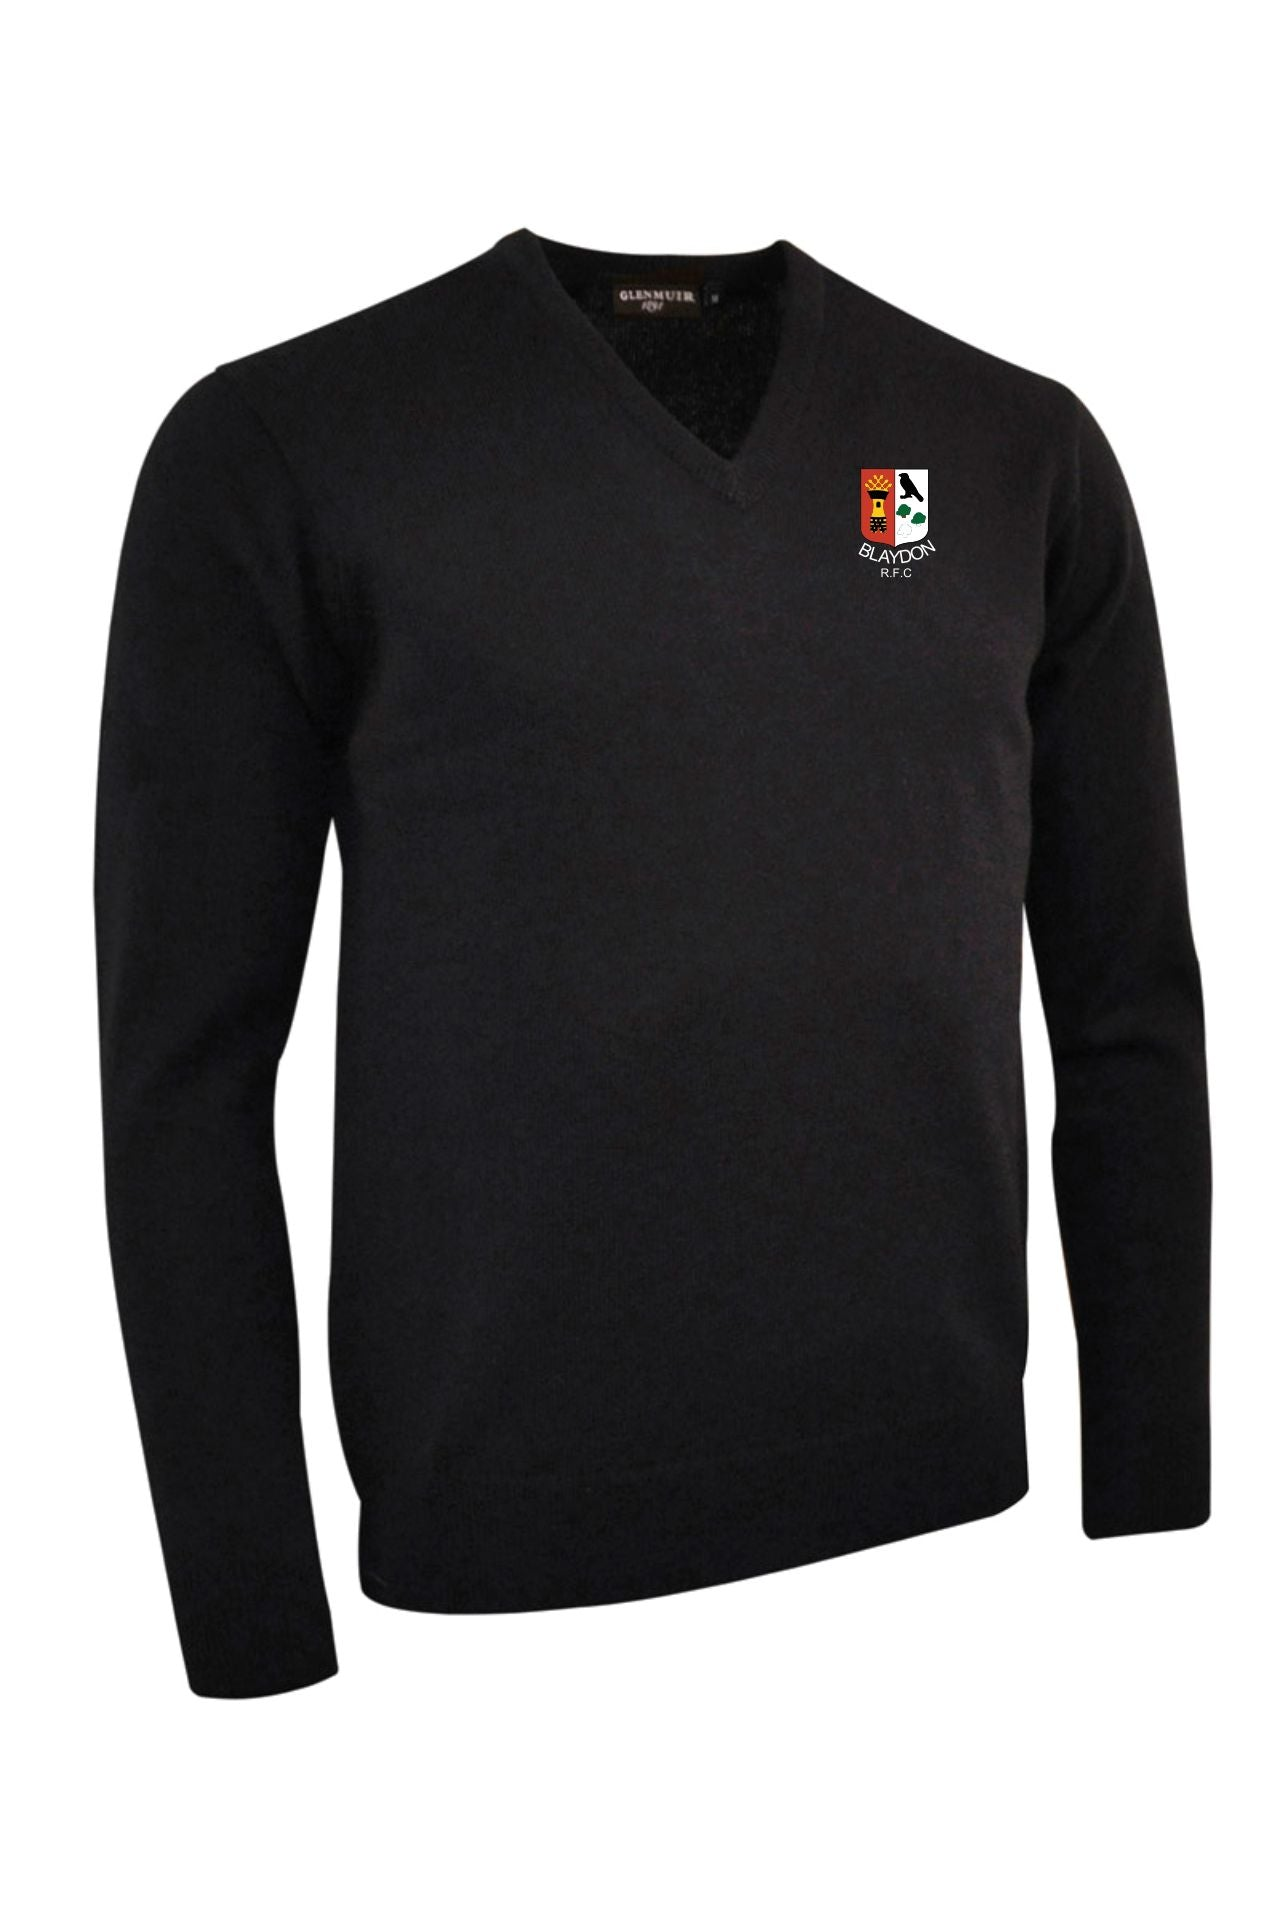 "Blaydon RFC "" Members"" Glenmuir Lambswool V Neck"